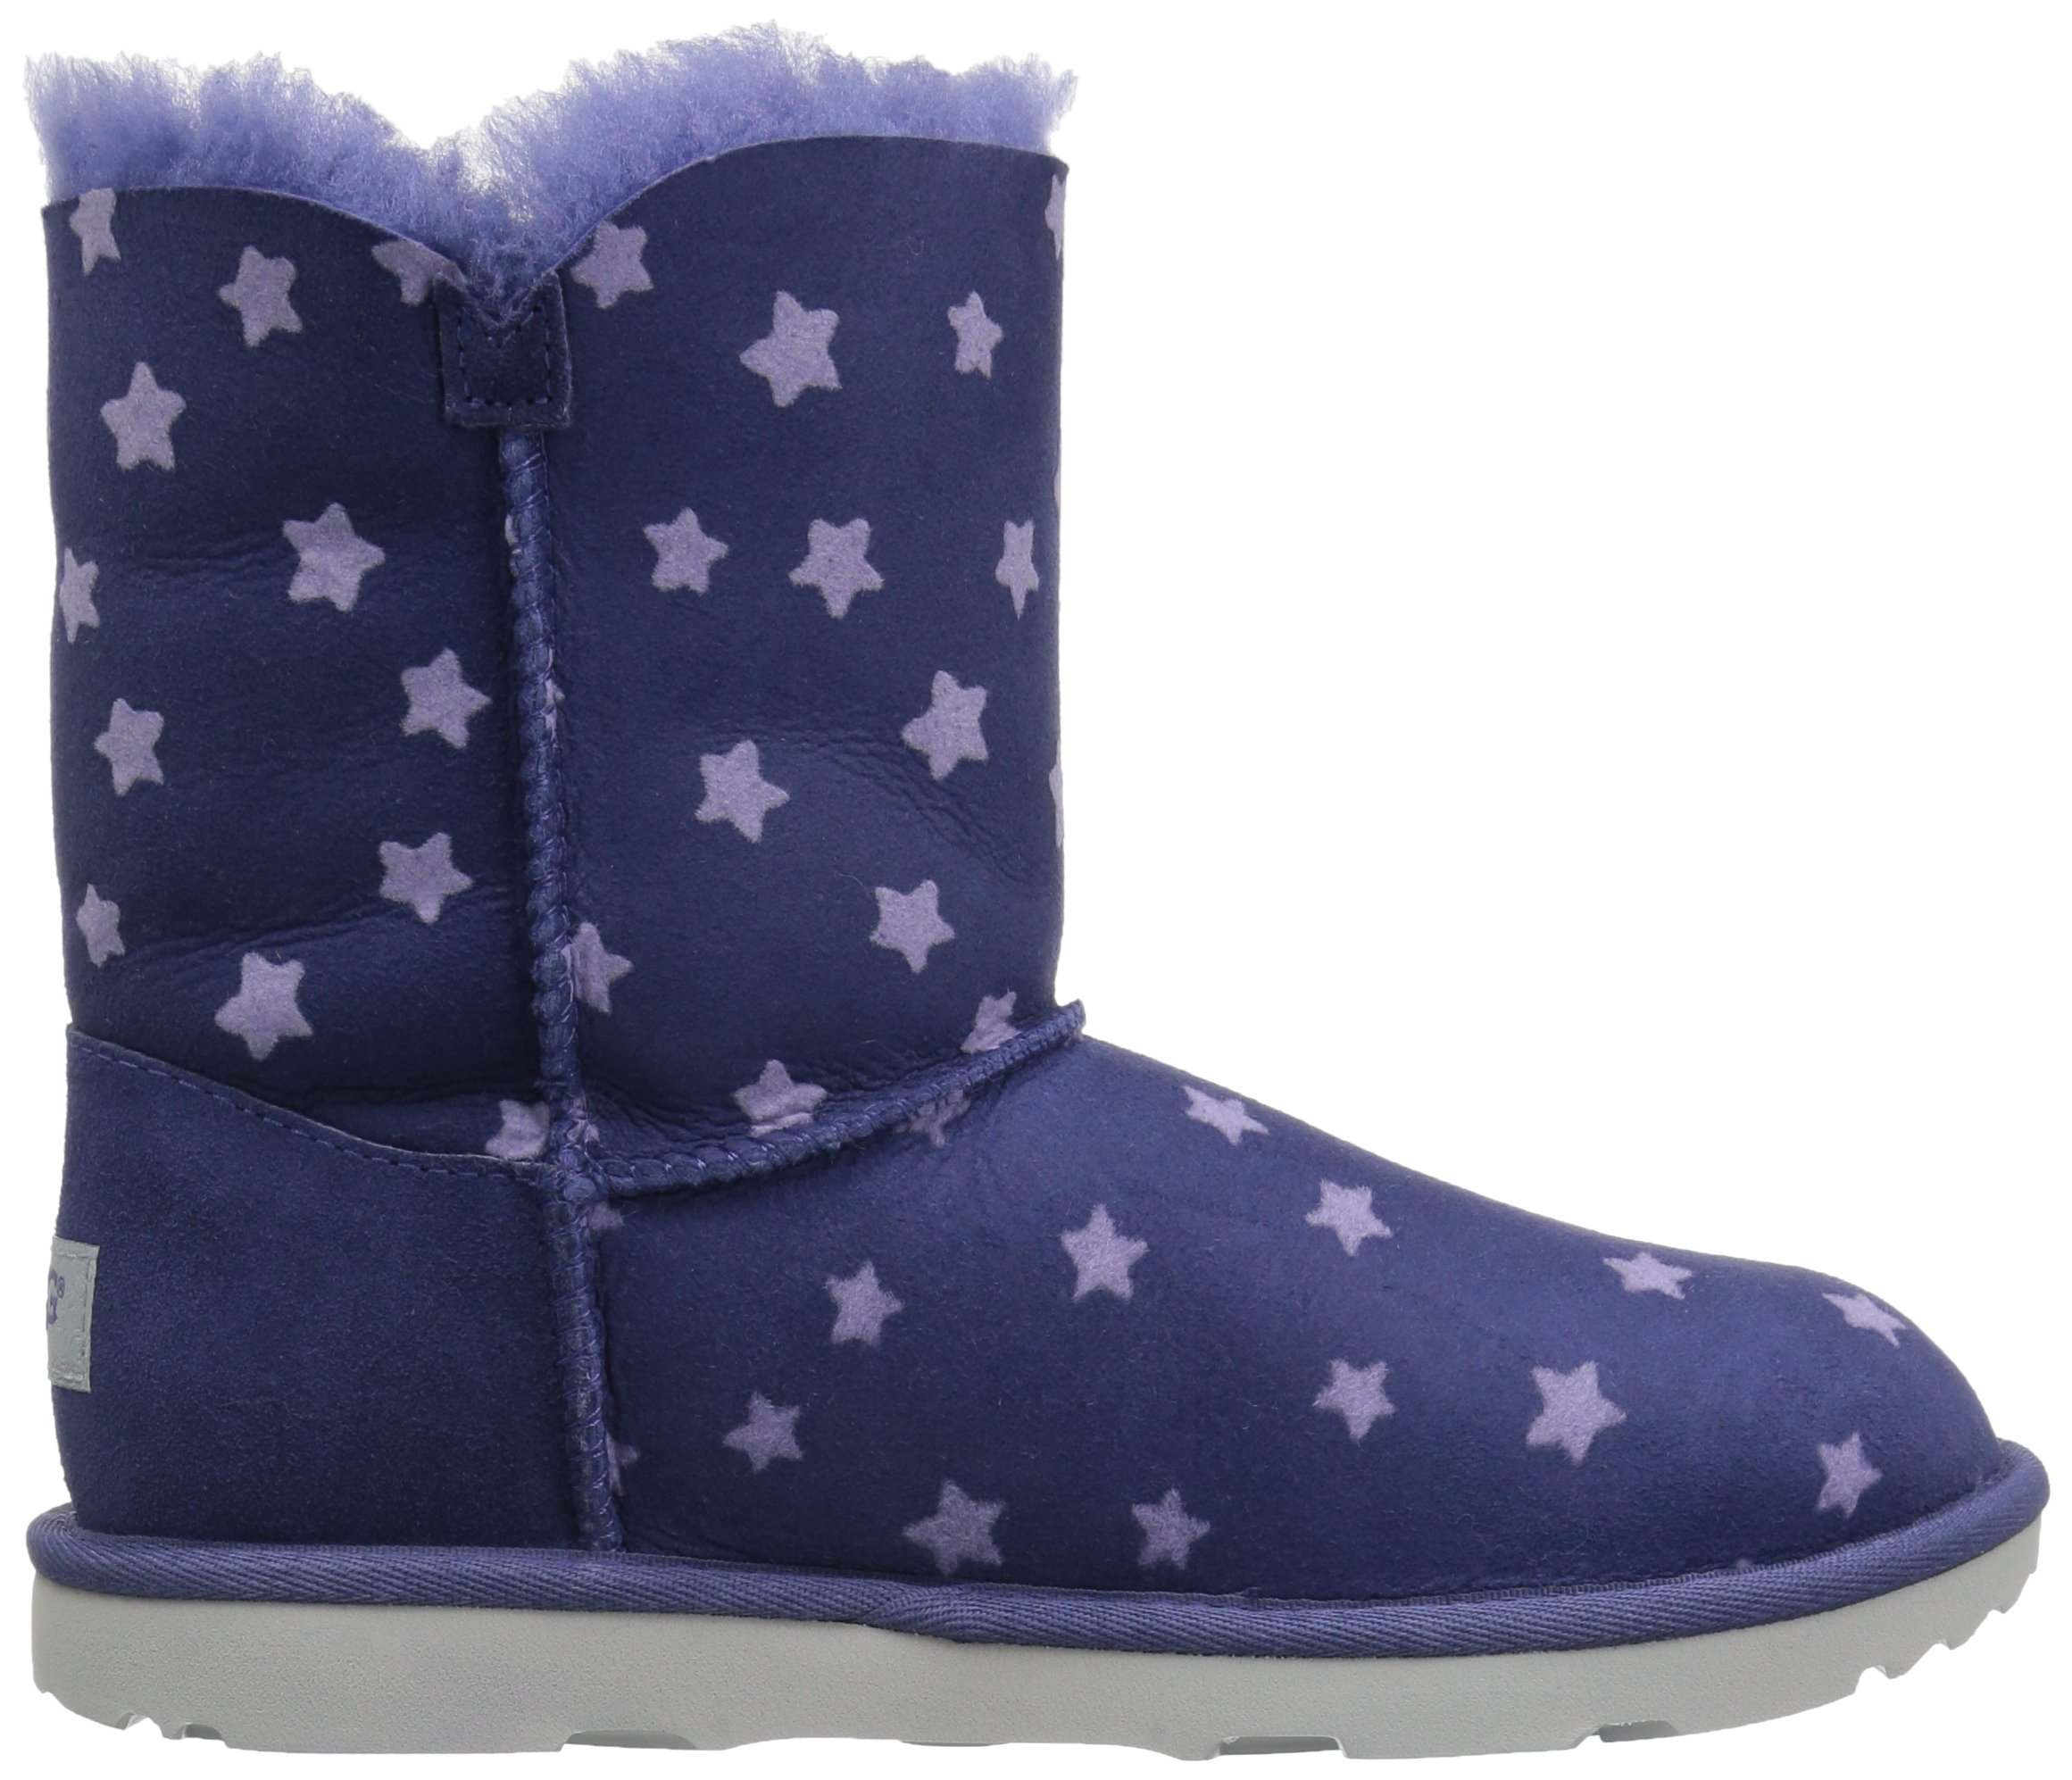 UGG Girls K Bailey Button II Stars Pull-On Boot, Nocturn, 1 M US Little Kid by UGG (Image #7)